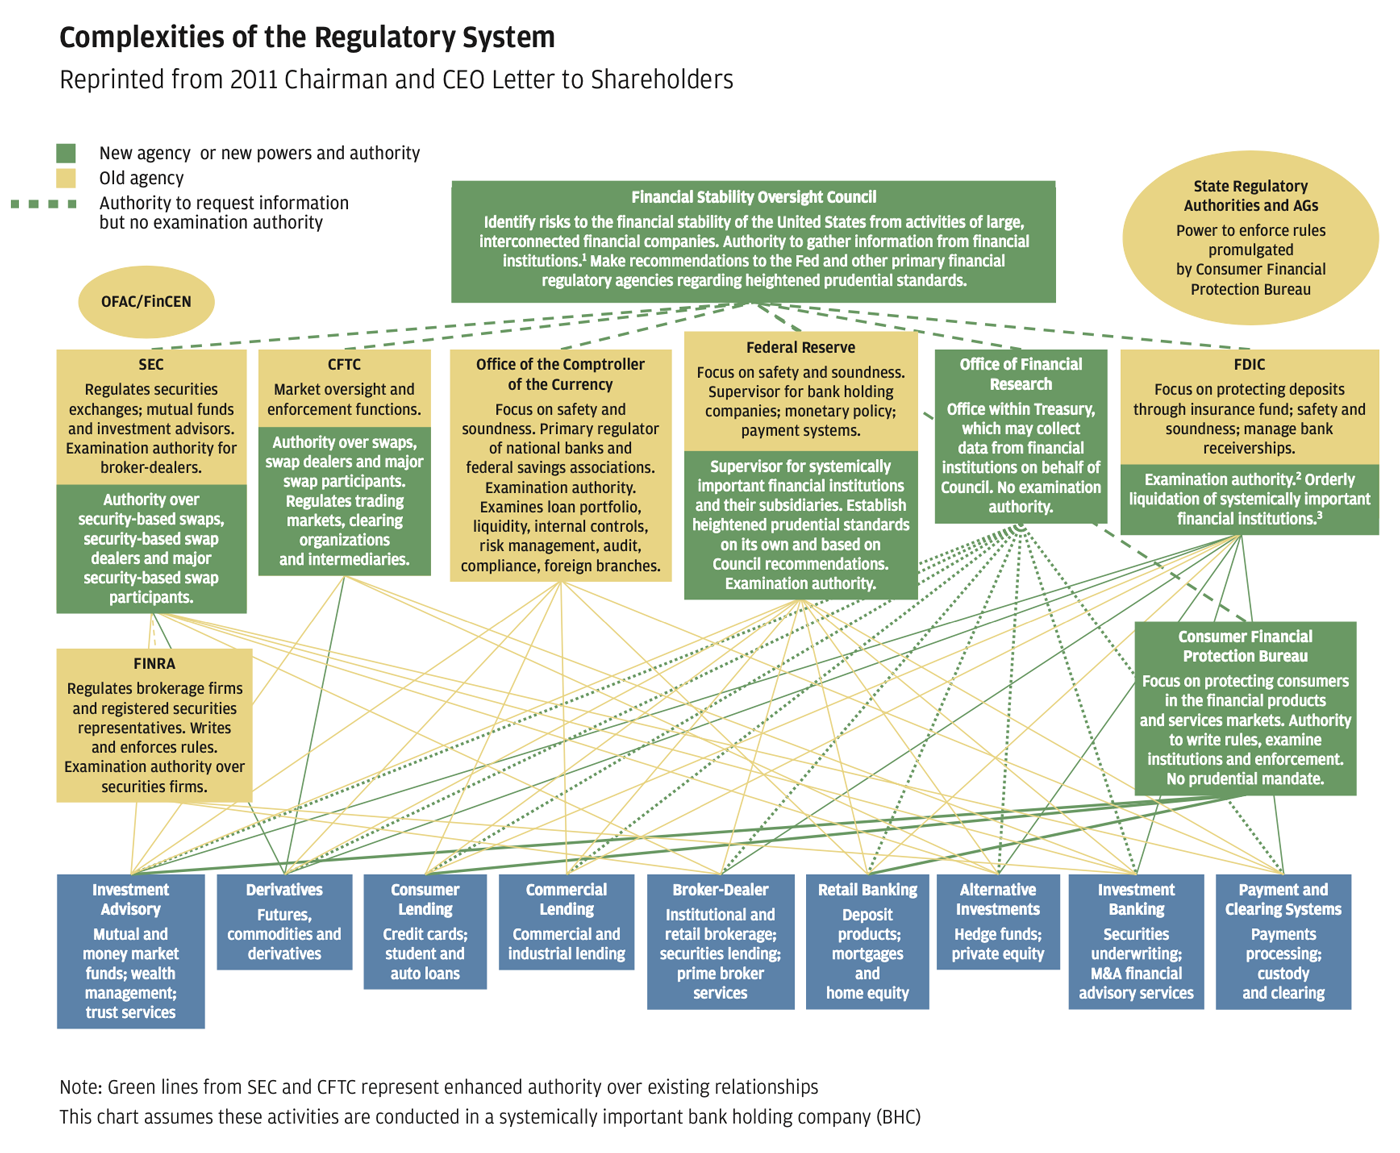 Infographic showing complexity of U.S. regulatory system